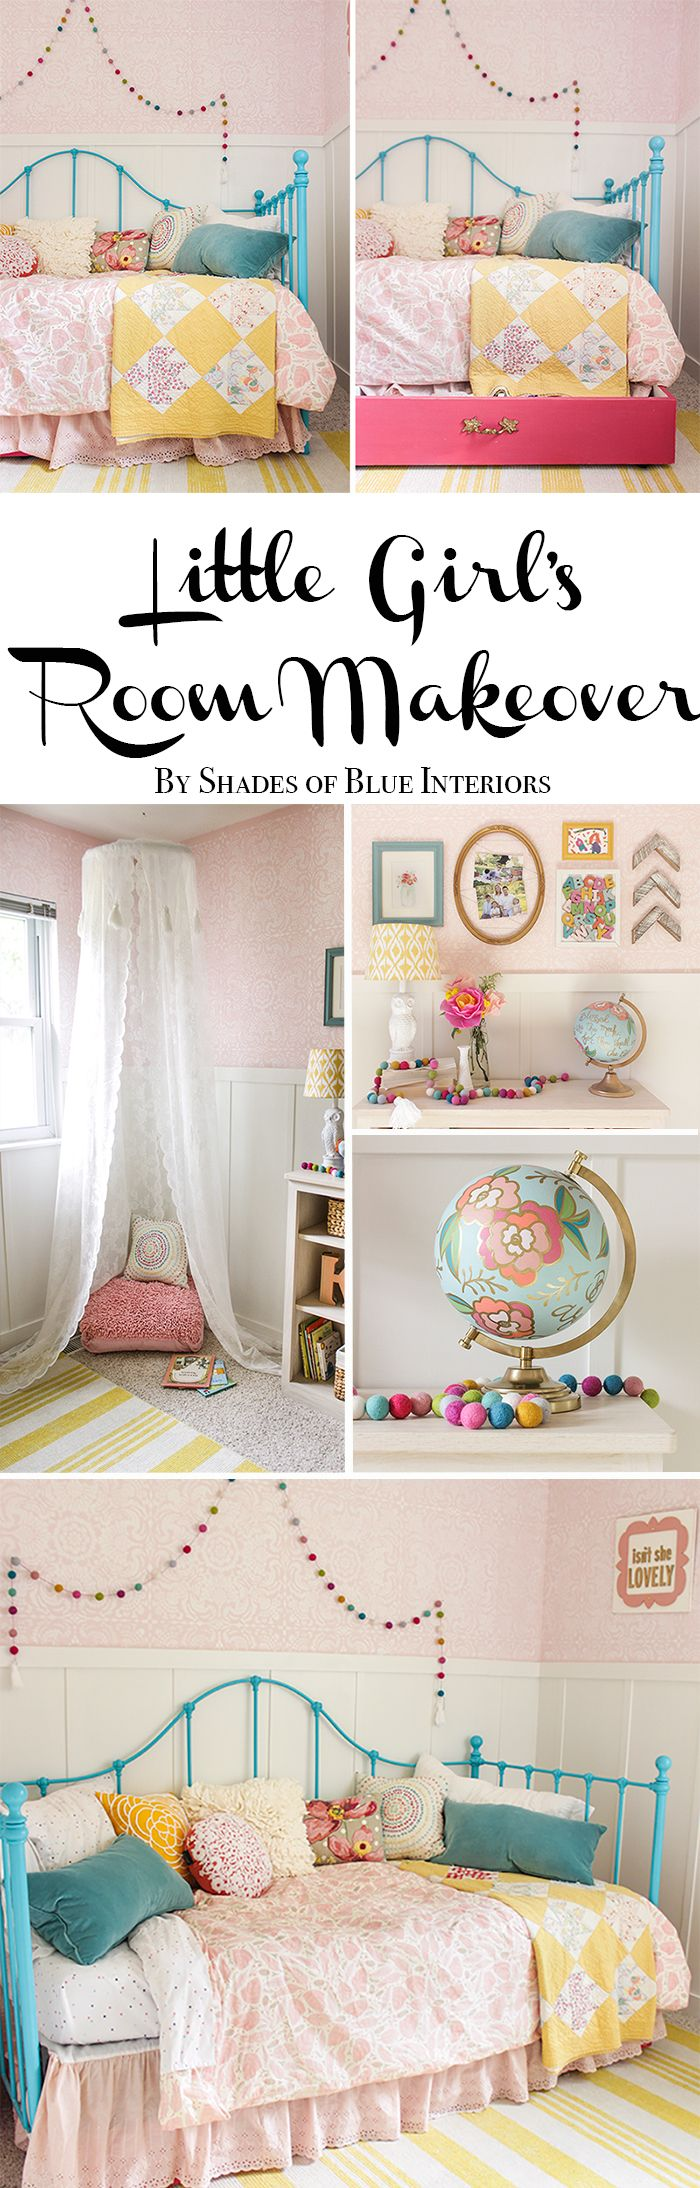 Little girl's room makeover including painted board and batten, stenciled walls, striped rug, daybed, storage trundle, and canopy.